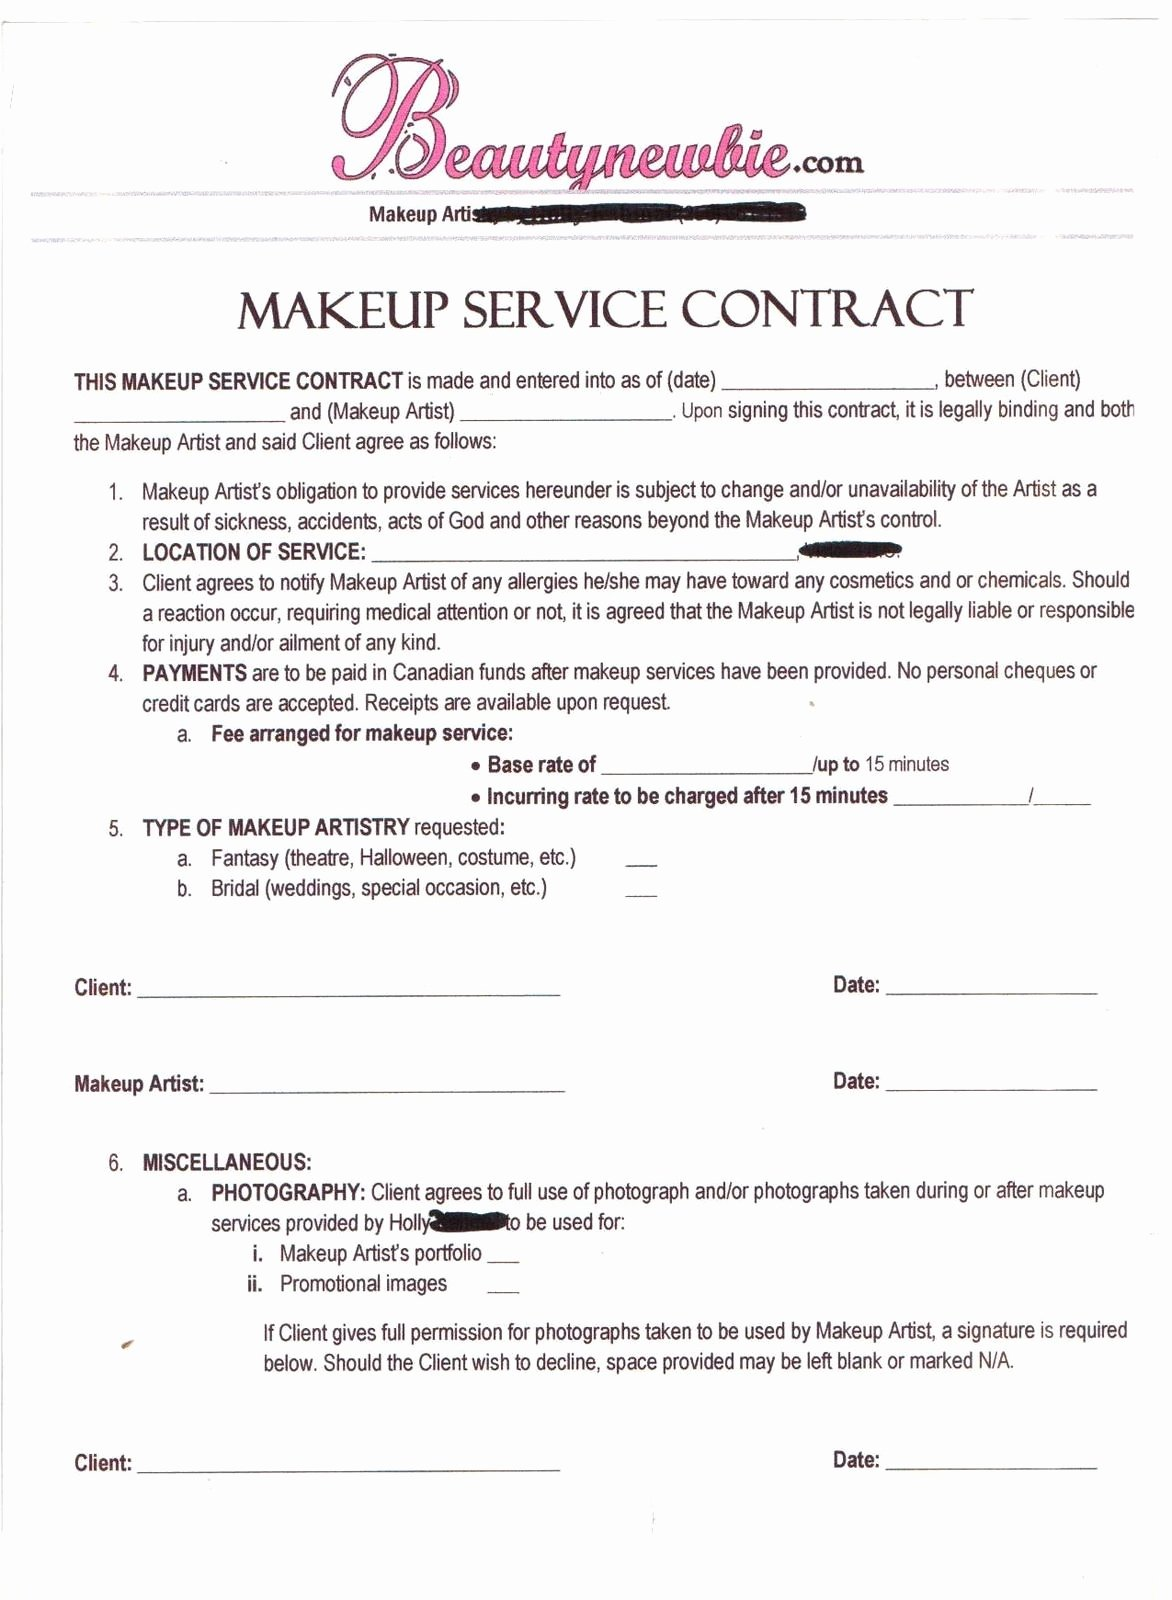 Makeup Artist Contract Template Free Inspirational Contract Makeup Artist